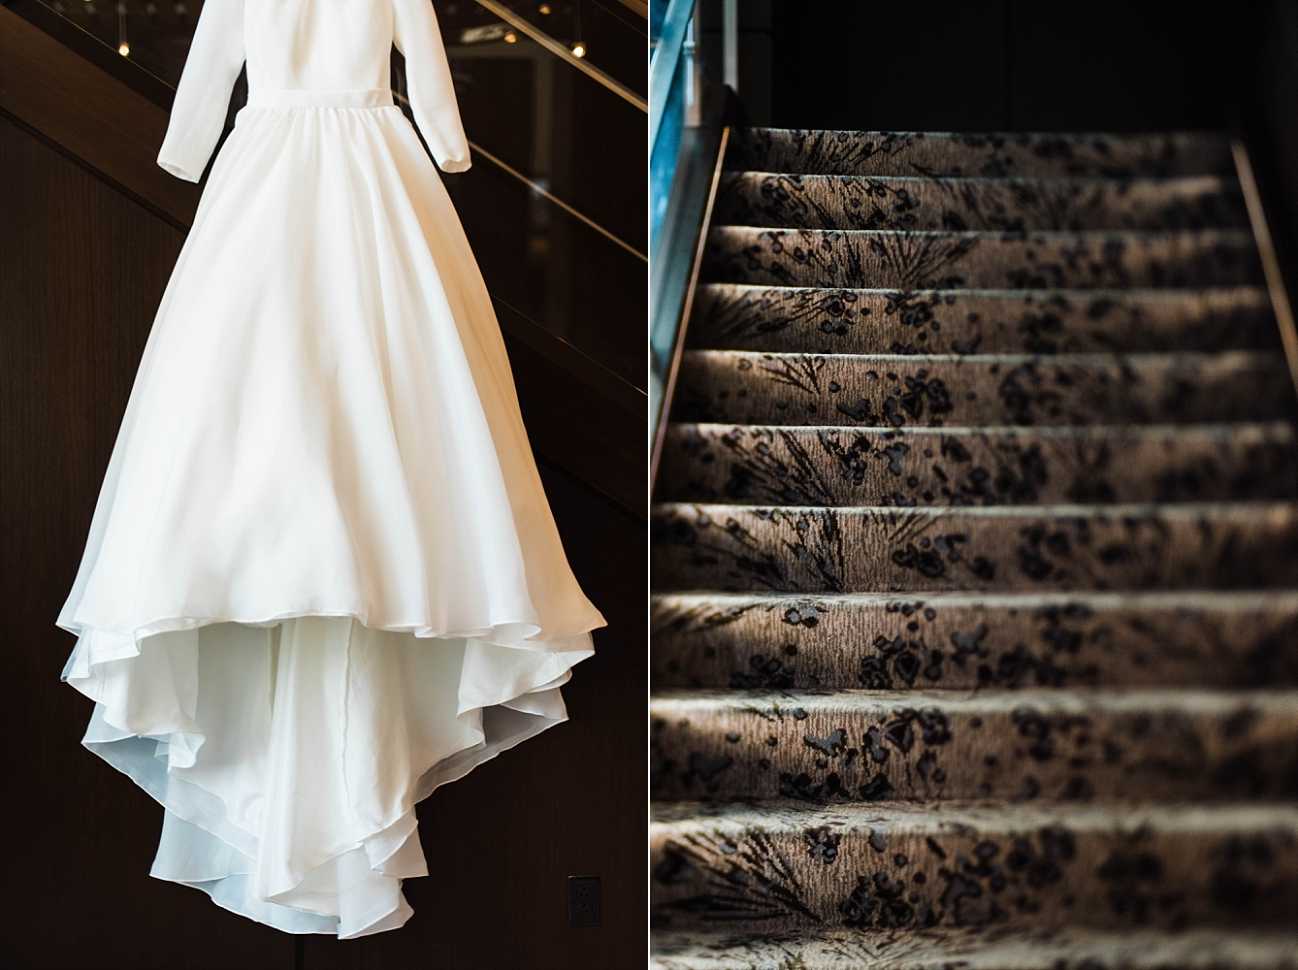 BRIDE'S DRESS | MAGGIE SOTTERO | BELLA'S BRIDAL AND FORMAL | ADAM AND YASMEEN | A WEDDING AT THE FLORENTINE BUILDING | BIRMINGHAM, AL